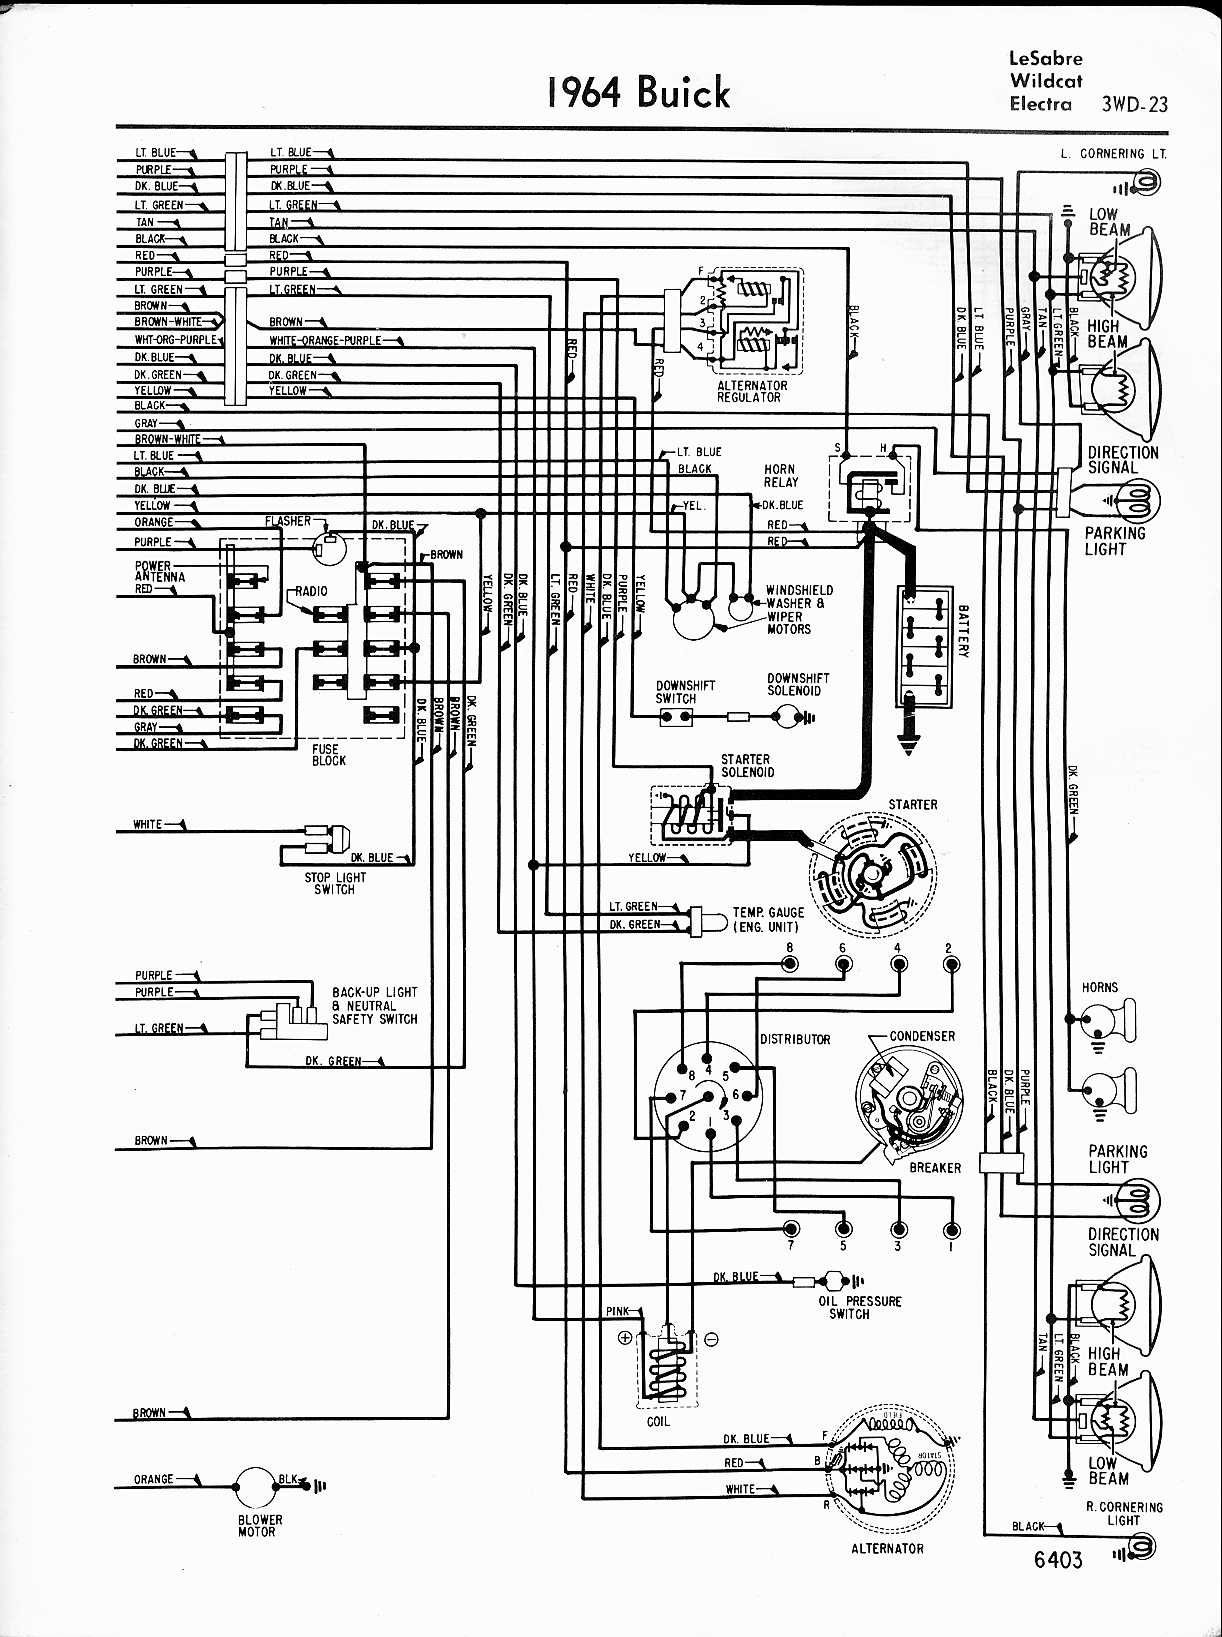 motorcycle honda shadow wiring diagram 1965 wiring diagram Two Stroke Wiring Diagram 1965 buick skylark wiring diagram online wiring diagram1999 buick wiring diagrams 1 12 tierarztpraxis ruffy de